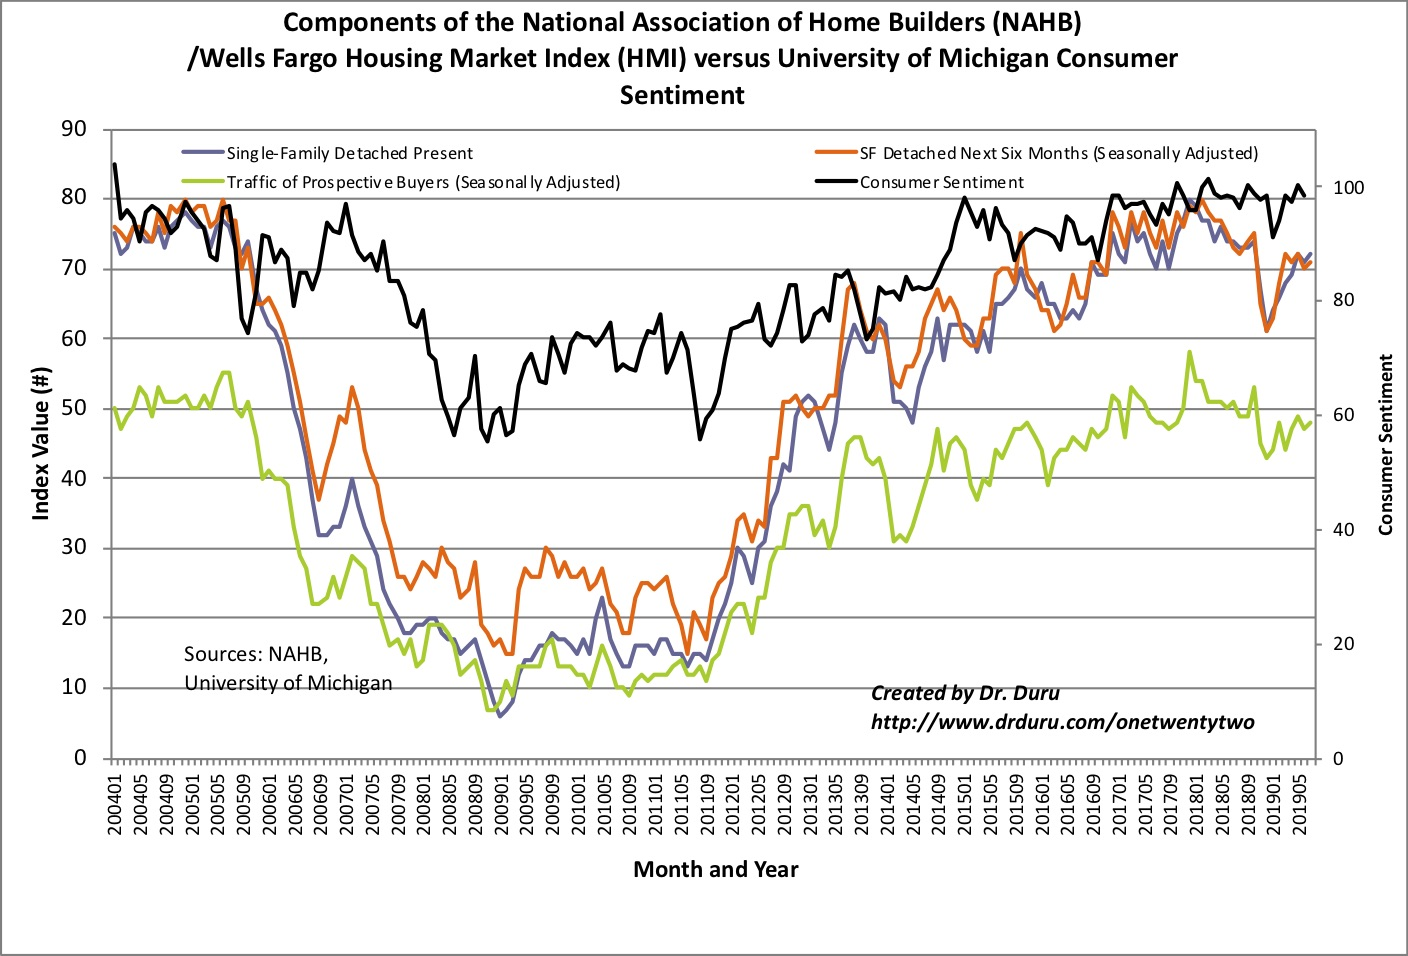 The components of the NAHB/Wells Fargo National Housing Market Index (HMI) continue to just drift alone.